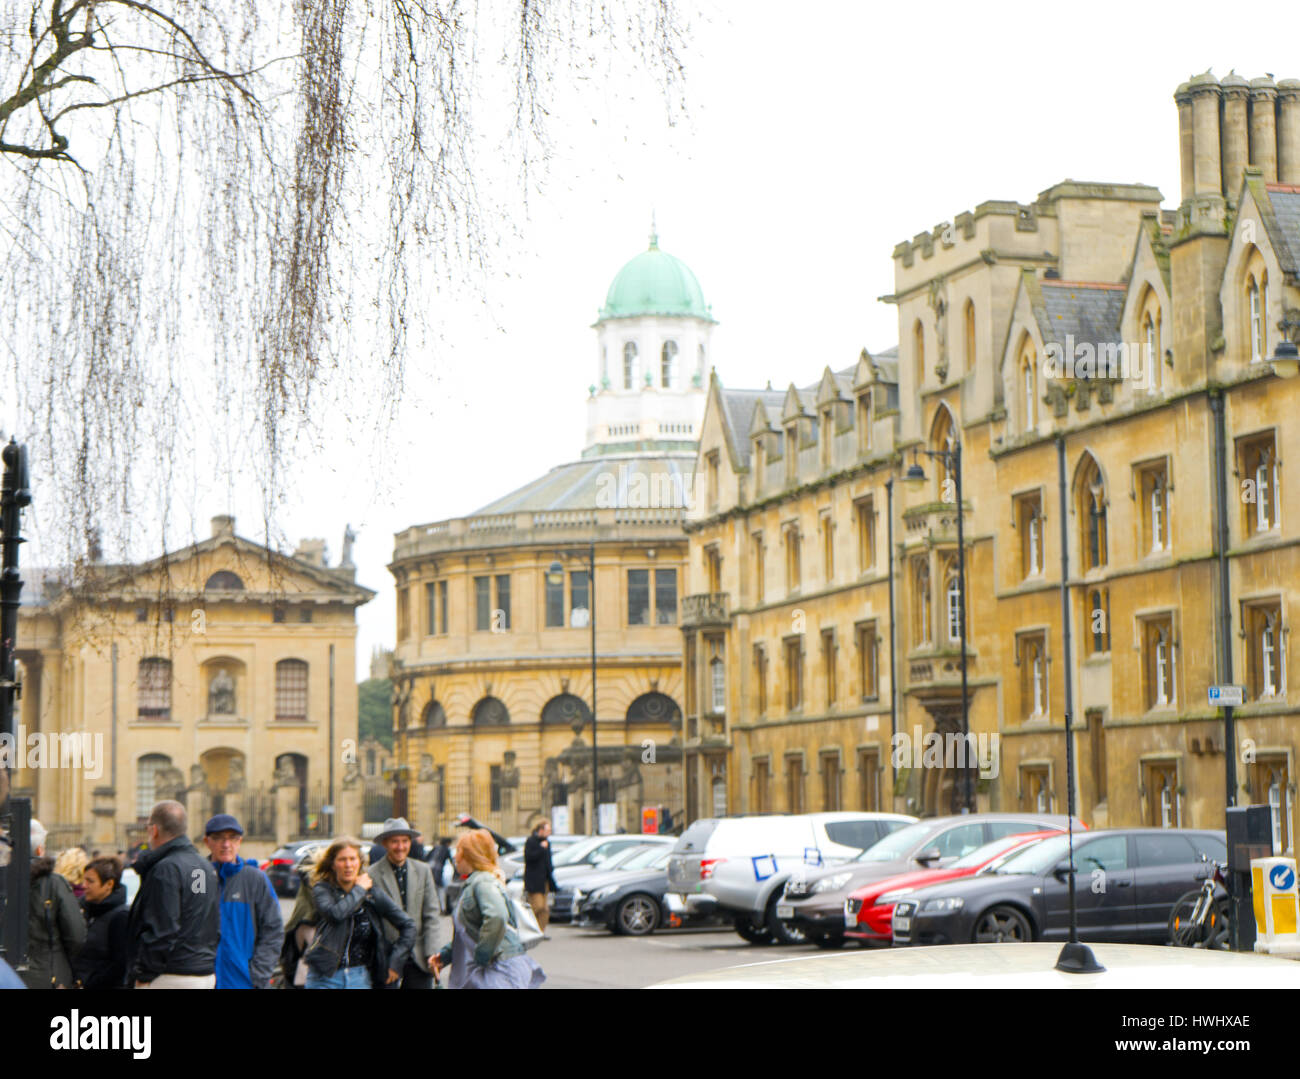 Square in the centre of the city of Oxford, Oxfordshire, UK - Stock Image